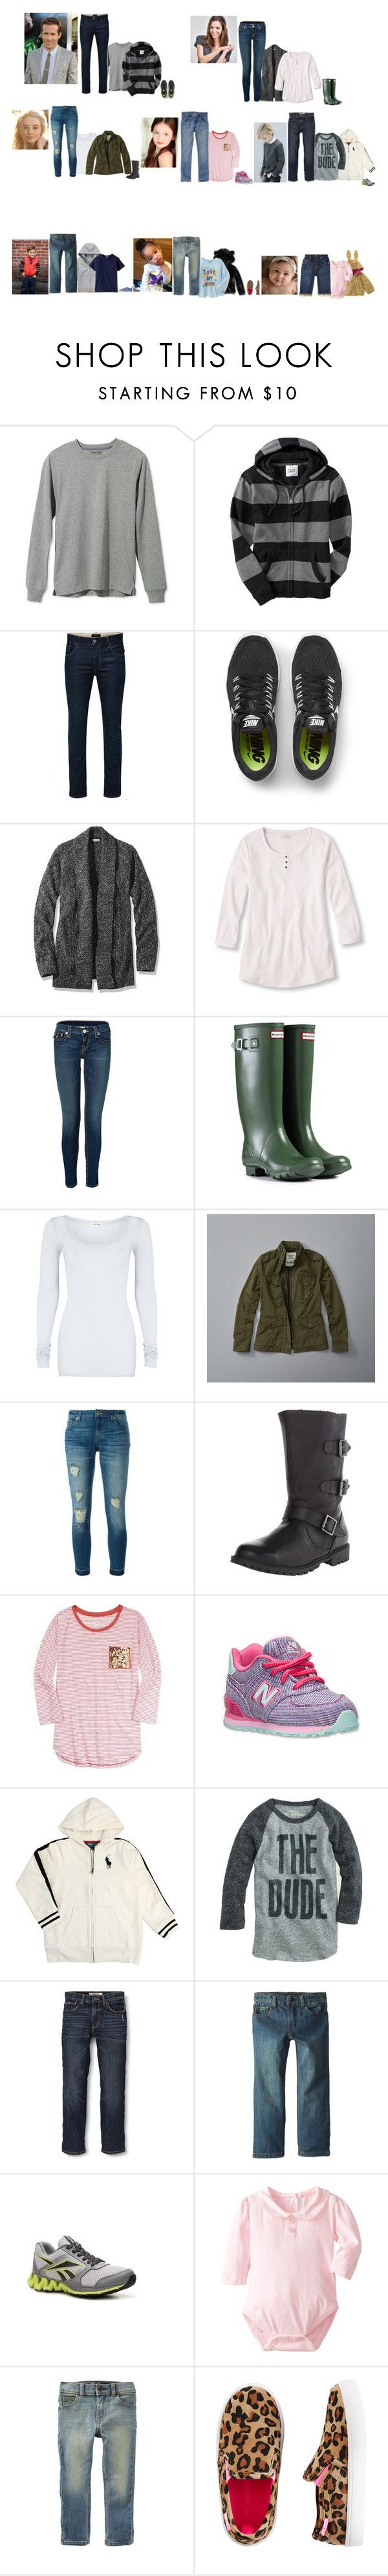 """""""The Hope family 11/12/16"""" by the-hope-family ❤ liked on Polyvore featuring L.L.Bean, Old Navy, Jack & Jones, NIKE, True Religion, Hunter, American Vintage, Abercrombie & Fitch, MICHAEL Michael Kors and Gymboree"""